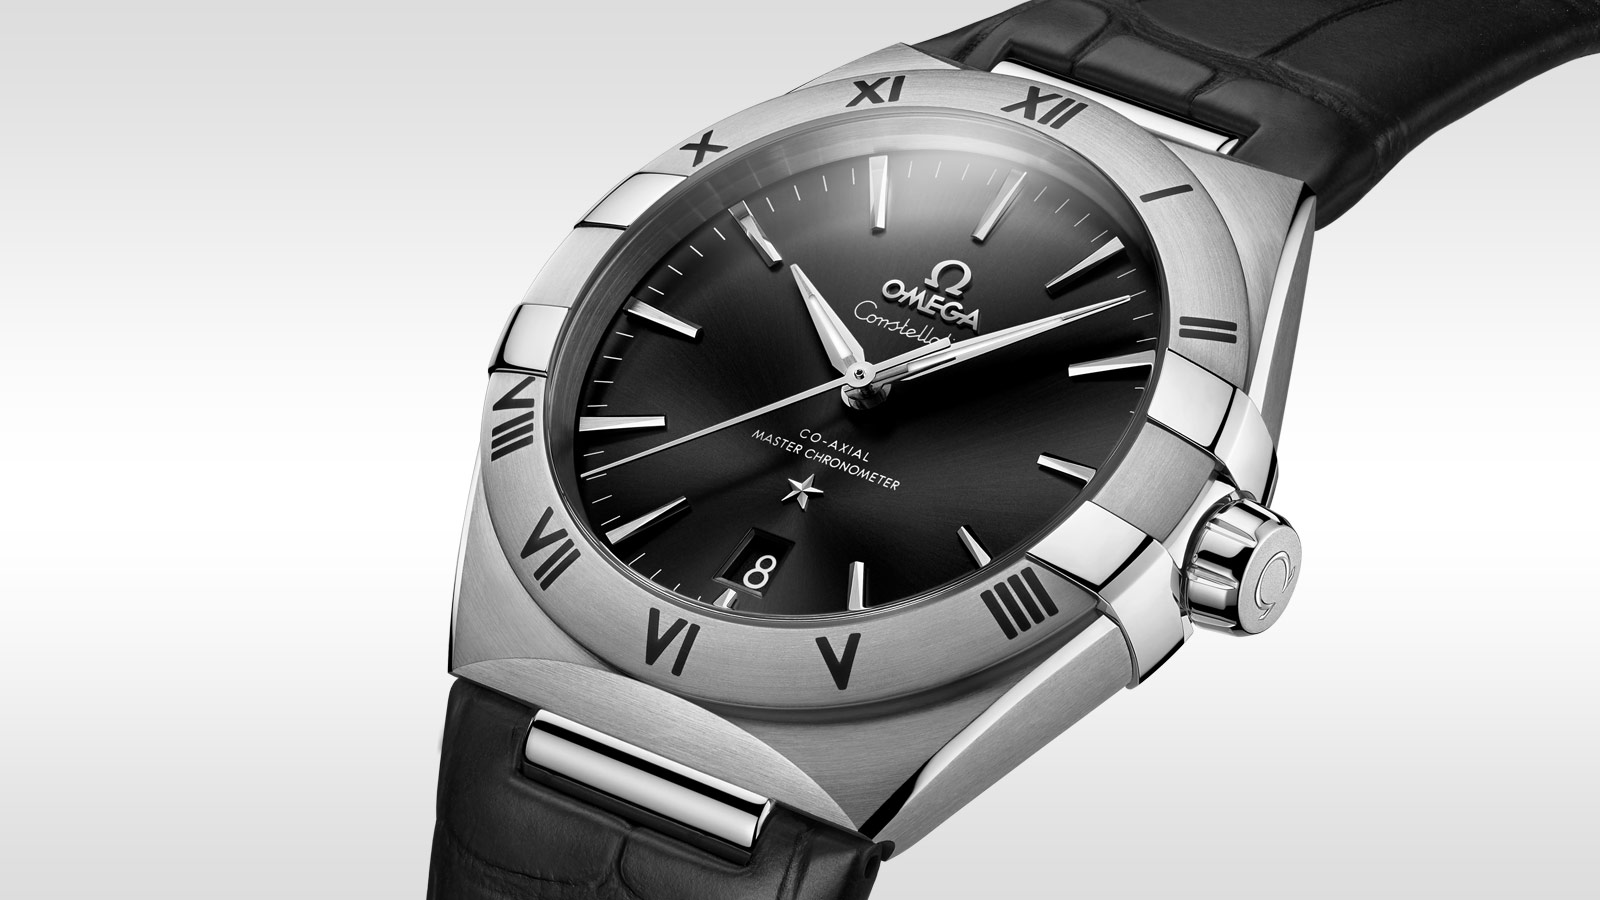 Constellation Constellation Constellation OMEGA Co‑Axial Master Chronometer 39 mm - 131.13.39.20.01.001 - Ver 1